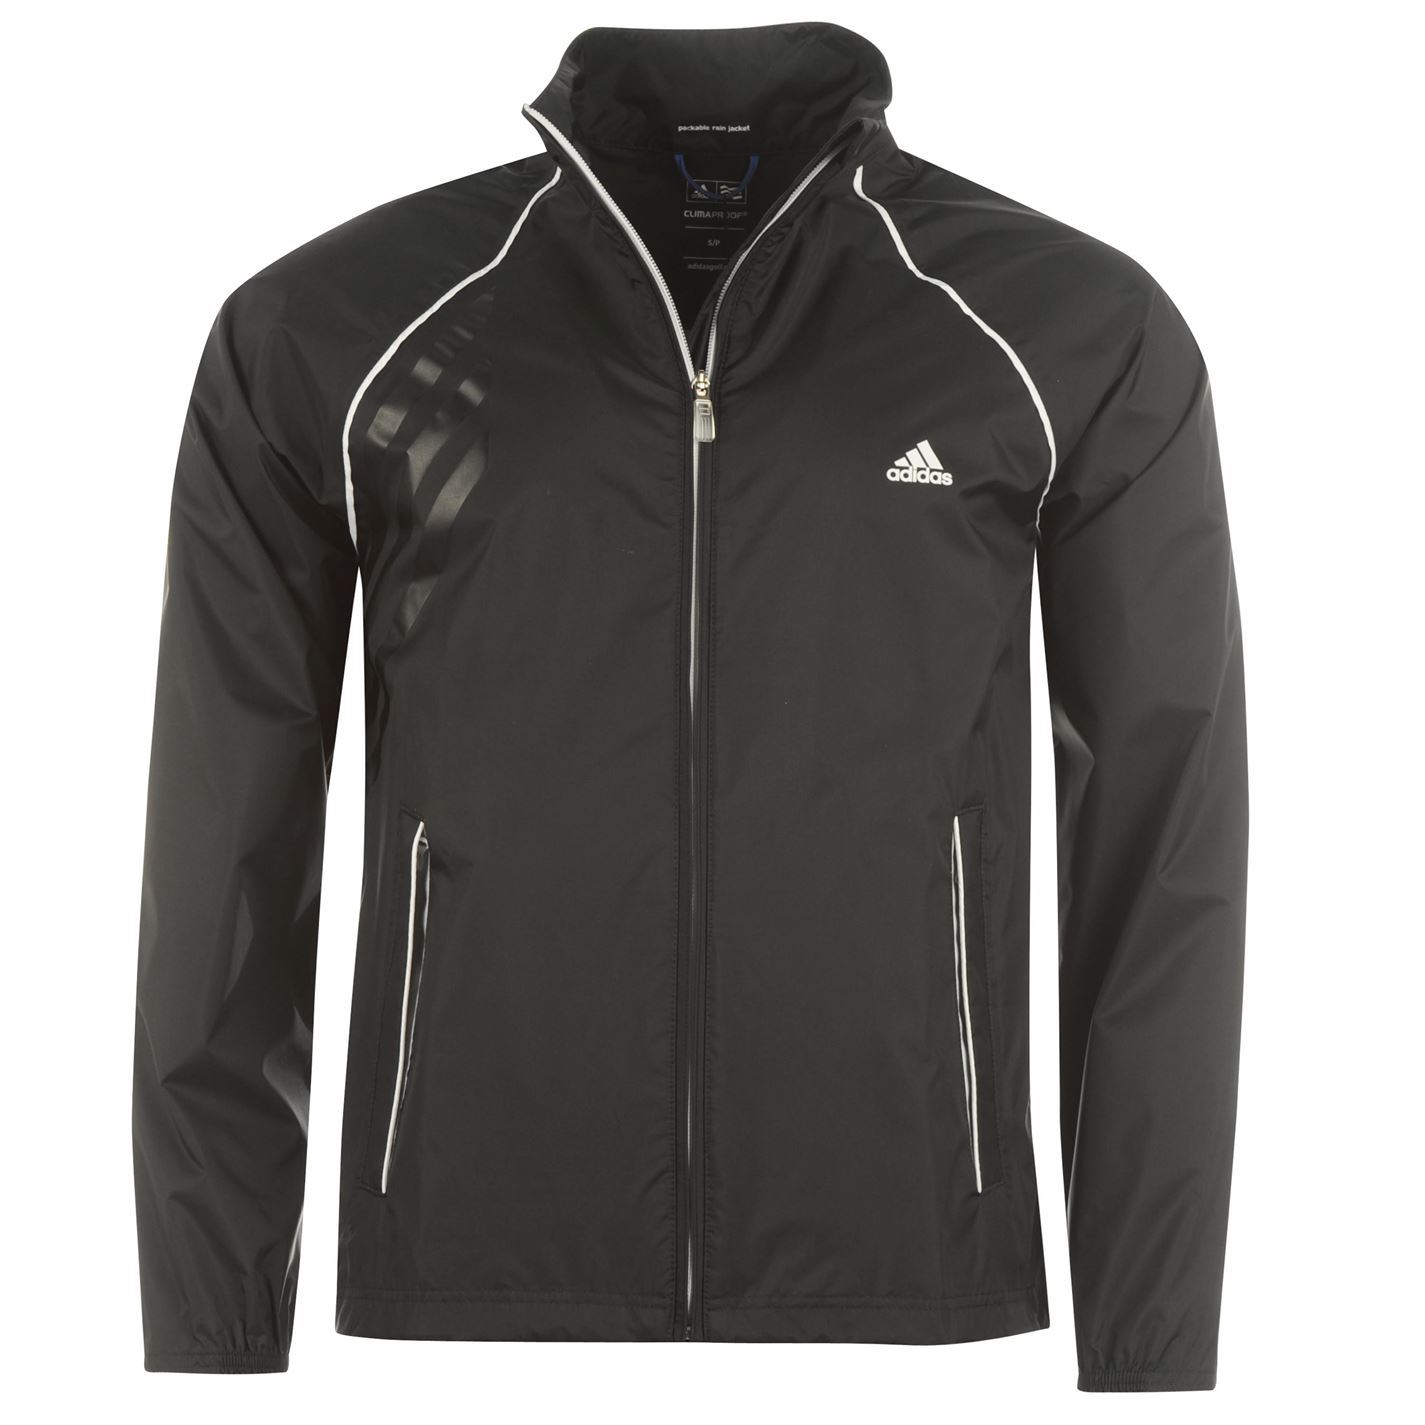 Adidas climaproof golf rain jacket mens black ebay for Adidas golf rain shirt